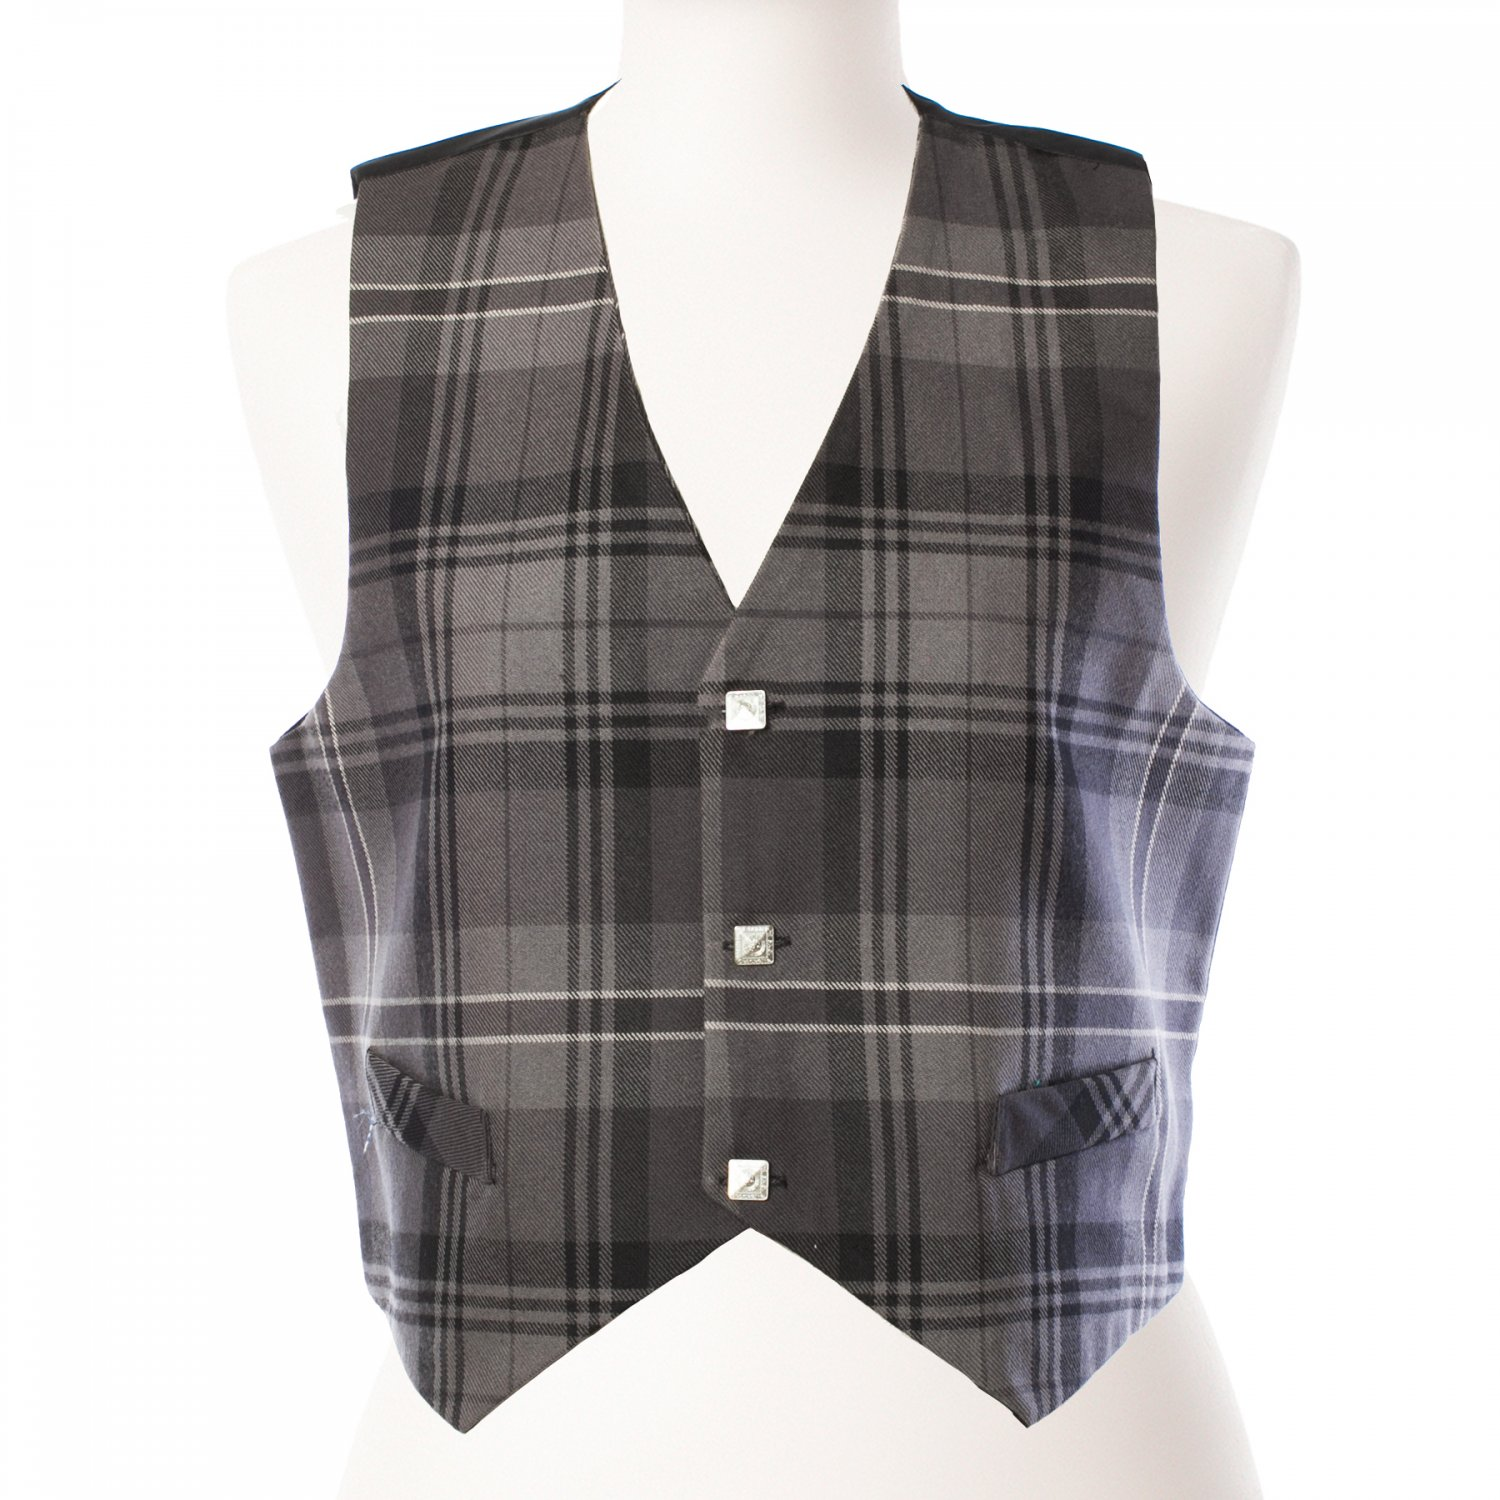 DE: Premium Quality Gary color Highland Tartan Plaid Vest Scottish Kilt Jacket Vest Size 40